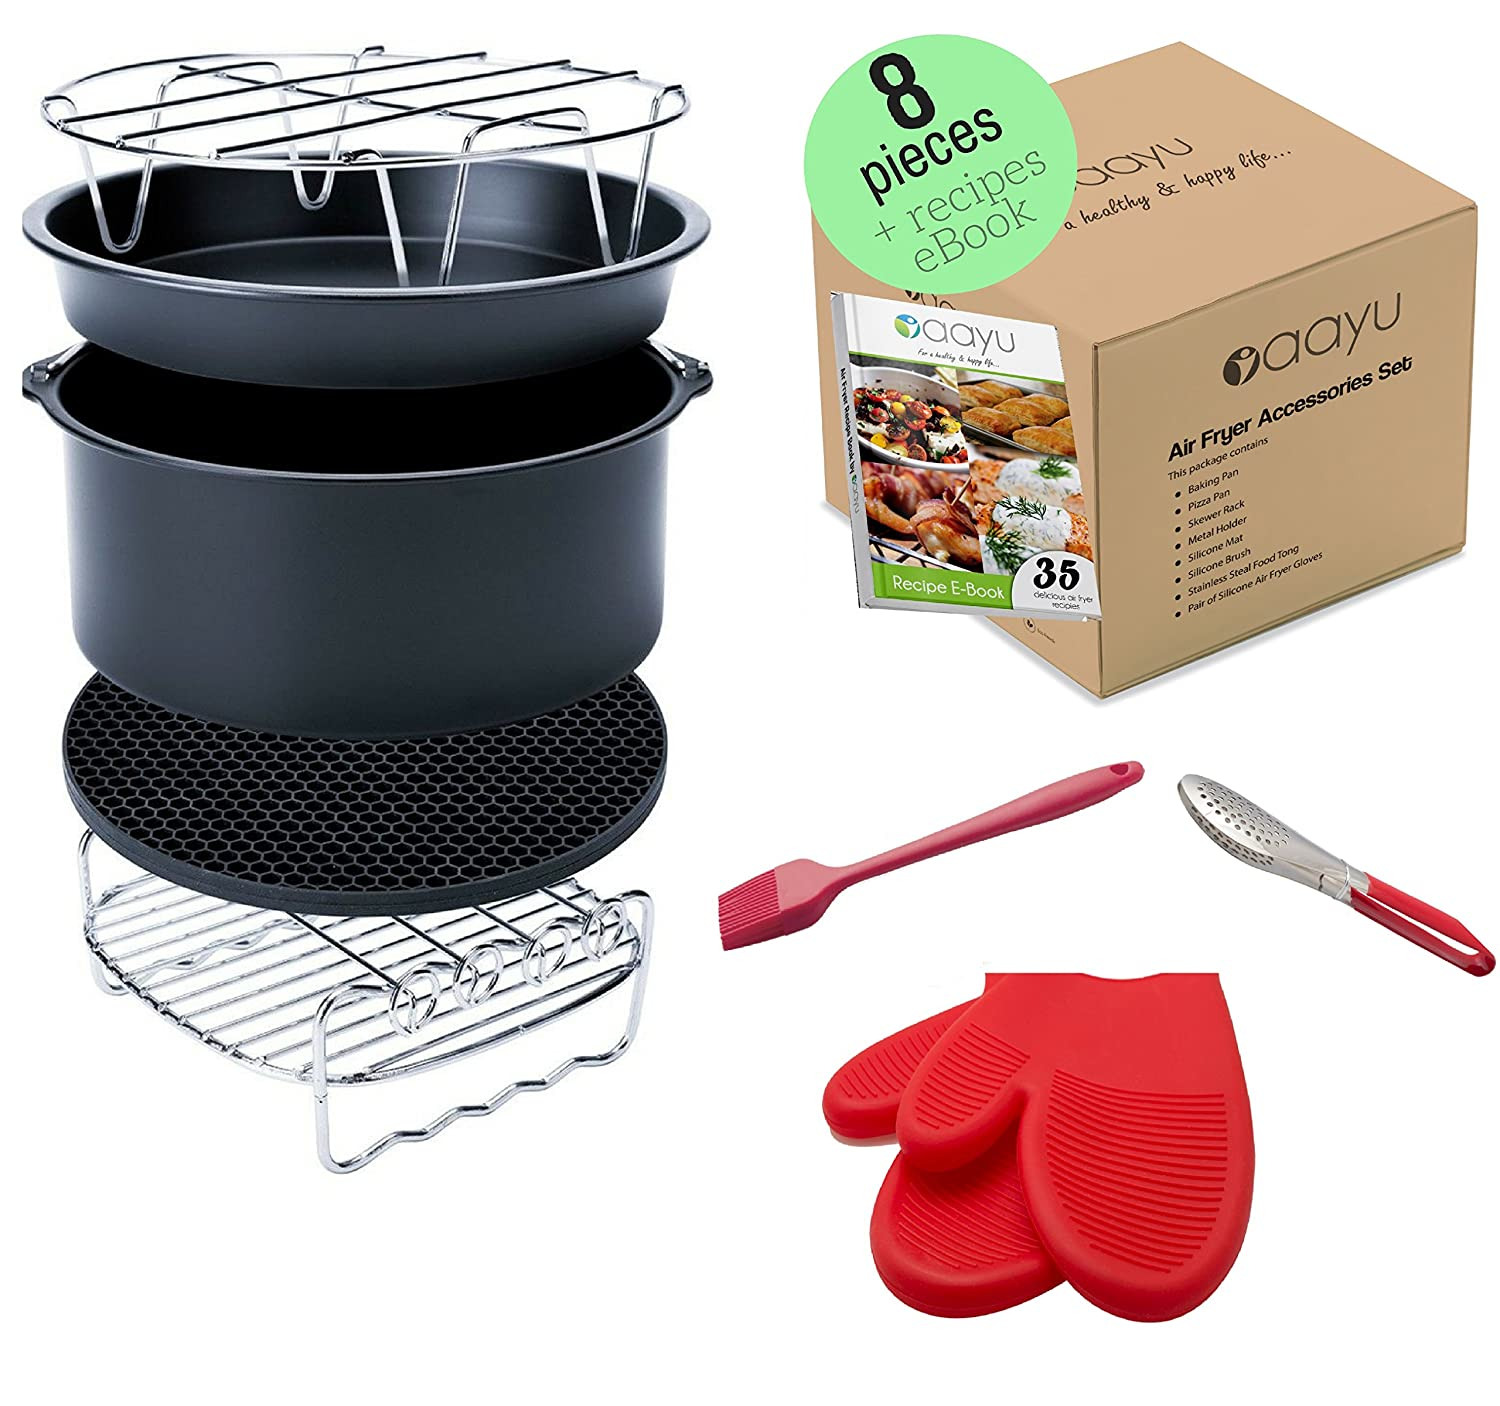 Premium Air Fryer Accessories Set - 8 Pieces, For GoWise Philips Farberware Power AirFryer and more brands, Fit all 3.7QT to 5.8QT (Universal), A Great Gift Idea